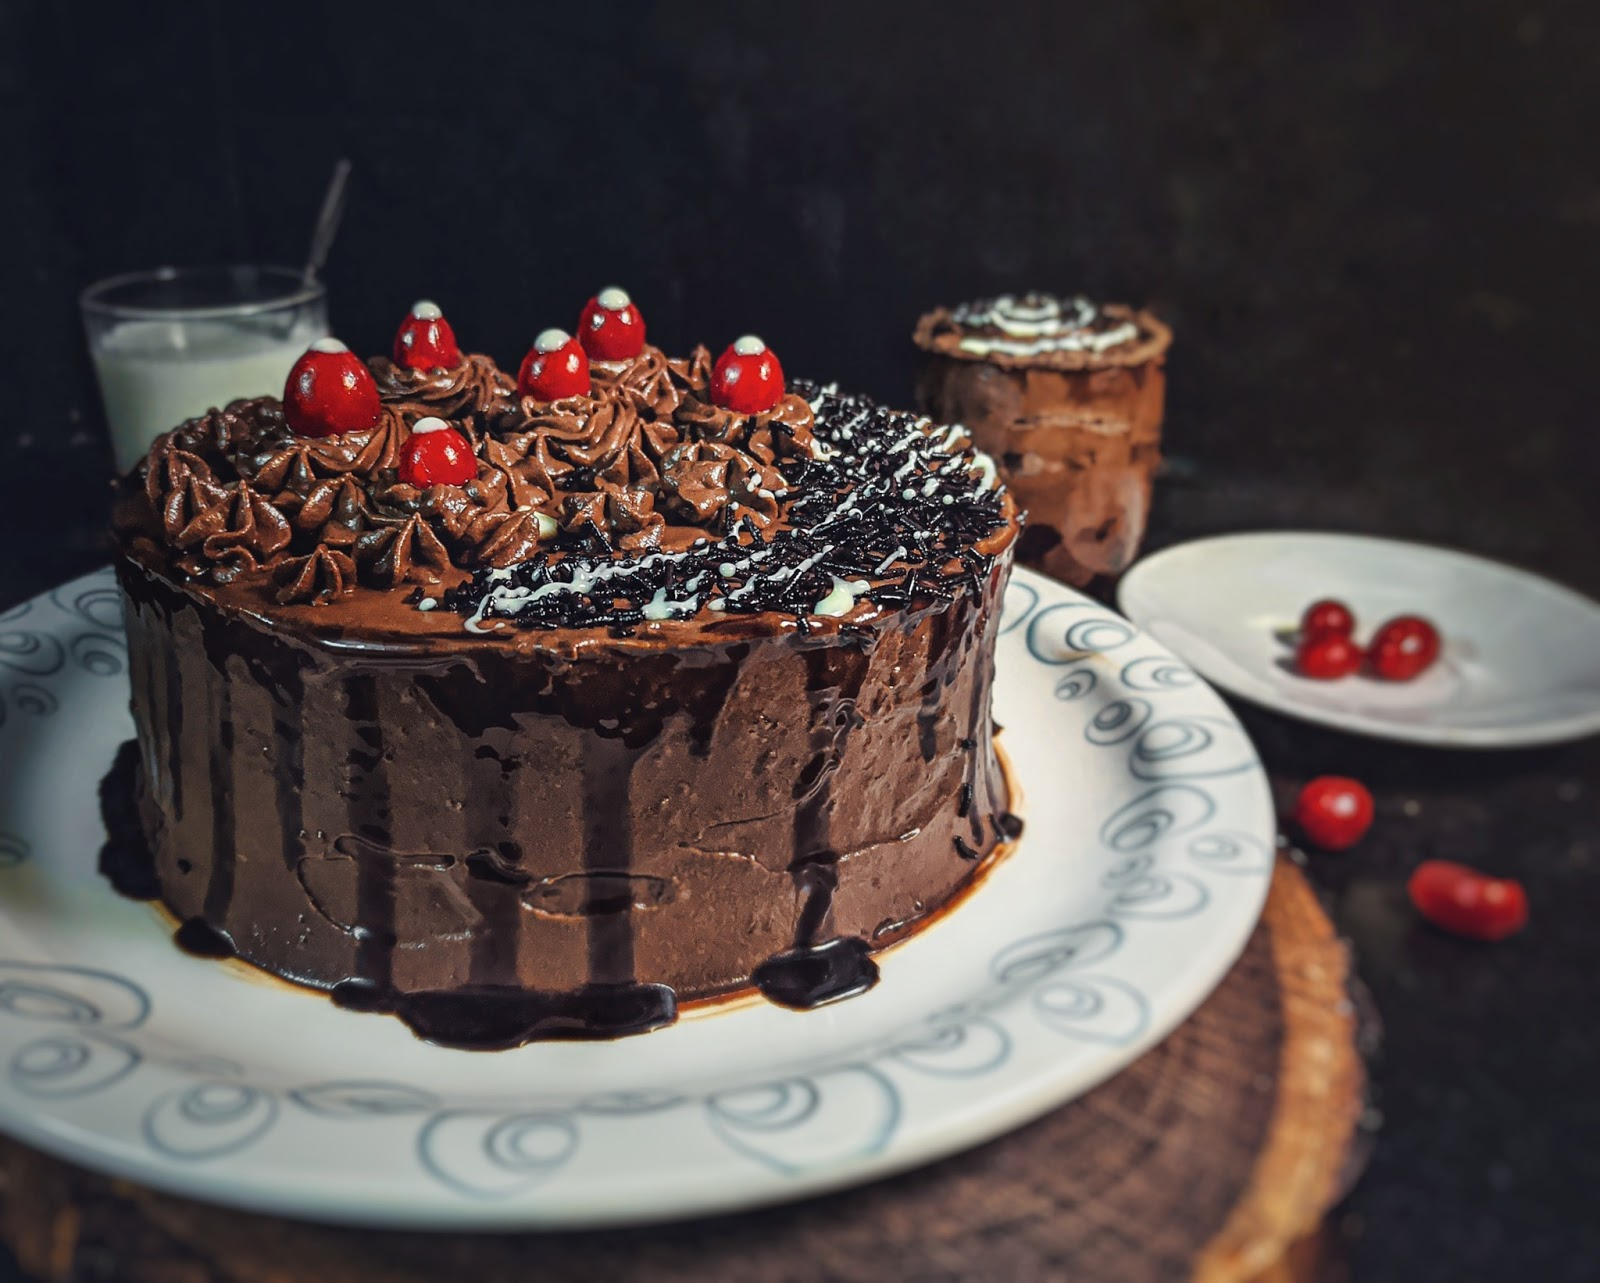 Best cakes you can eat for brunch